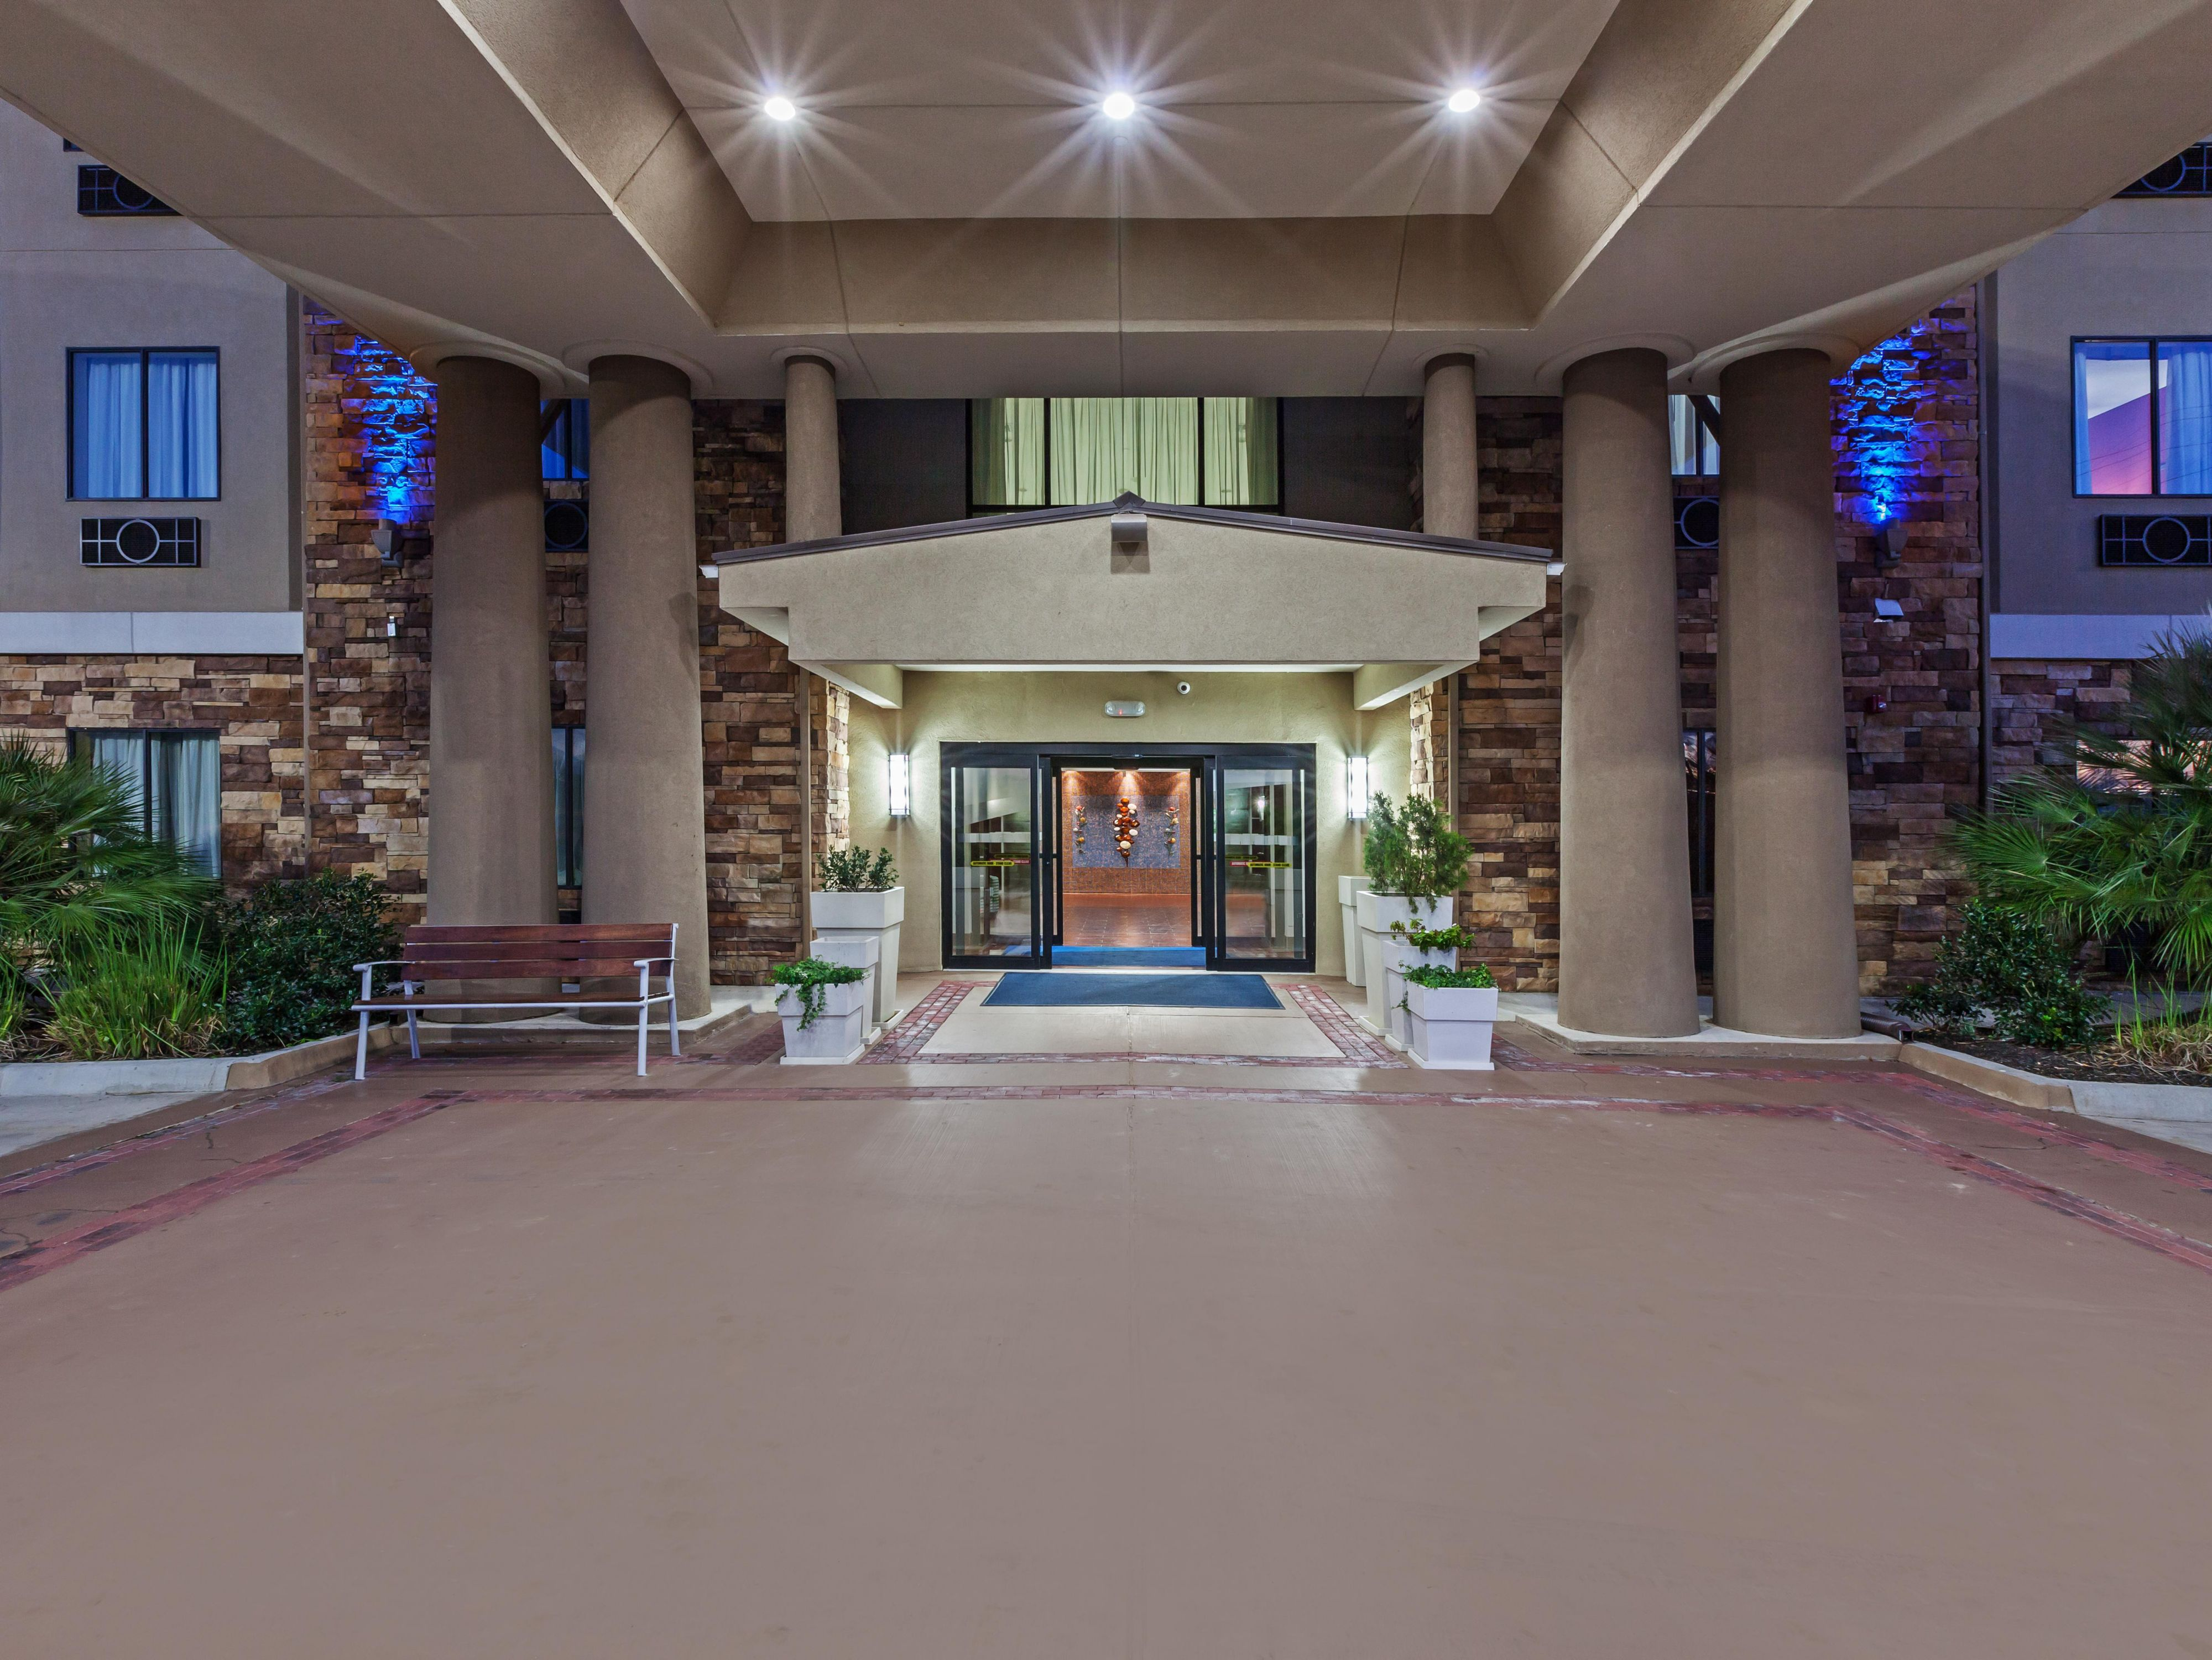 Inviting hotel entrance